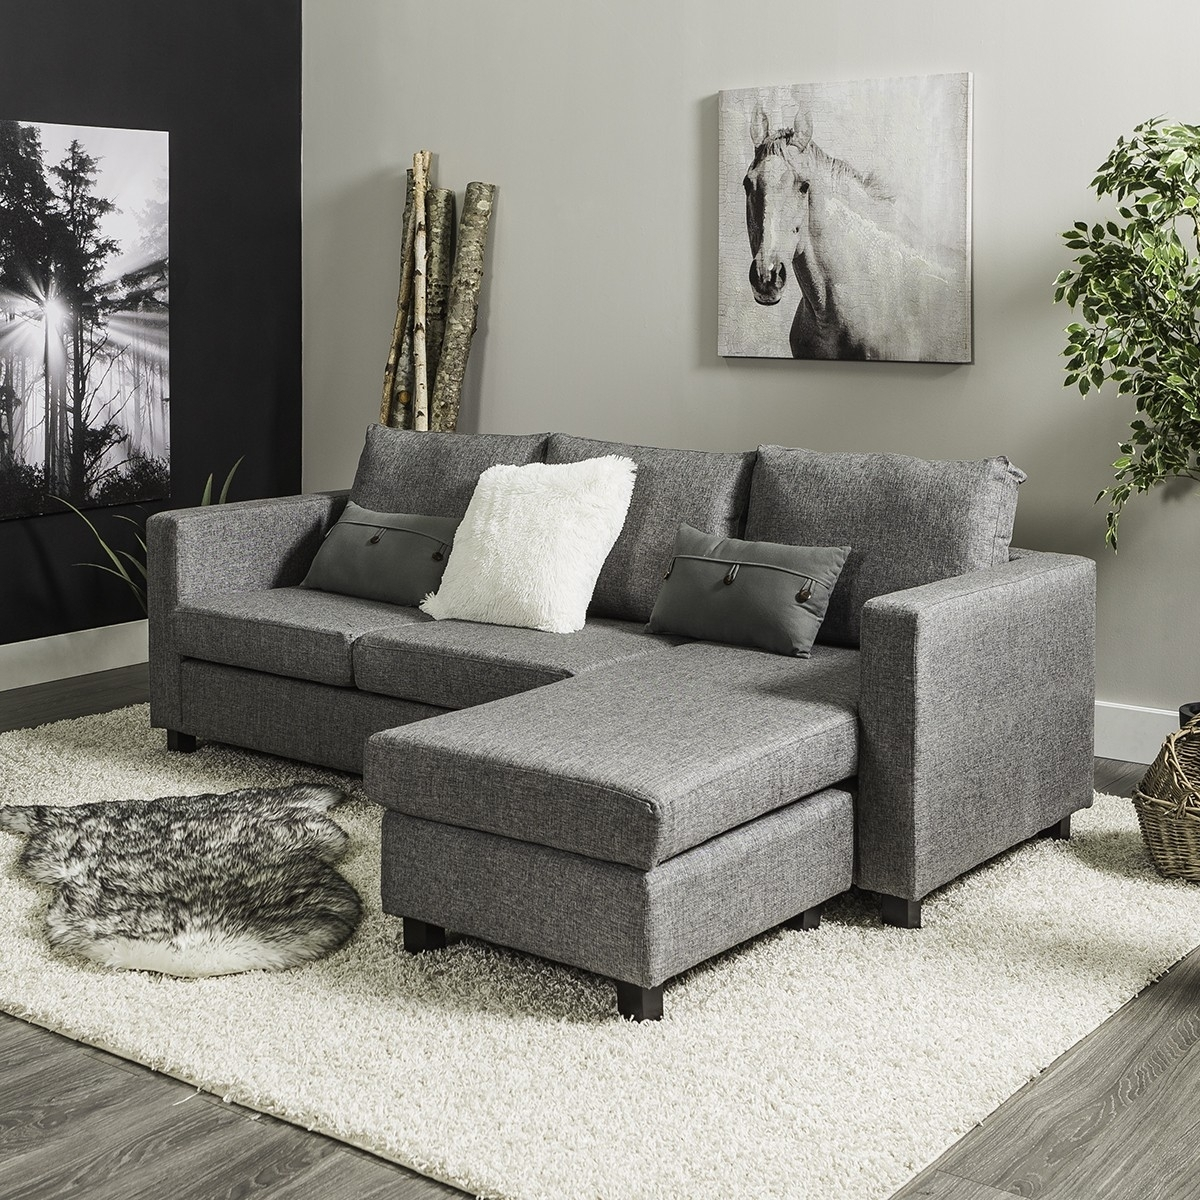 Casa Corner Sofa (Grey) For Jysk Sectional Sofas (View 7 of 10)